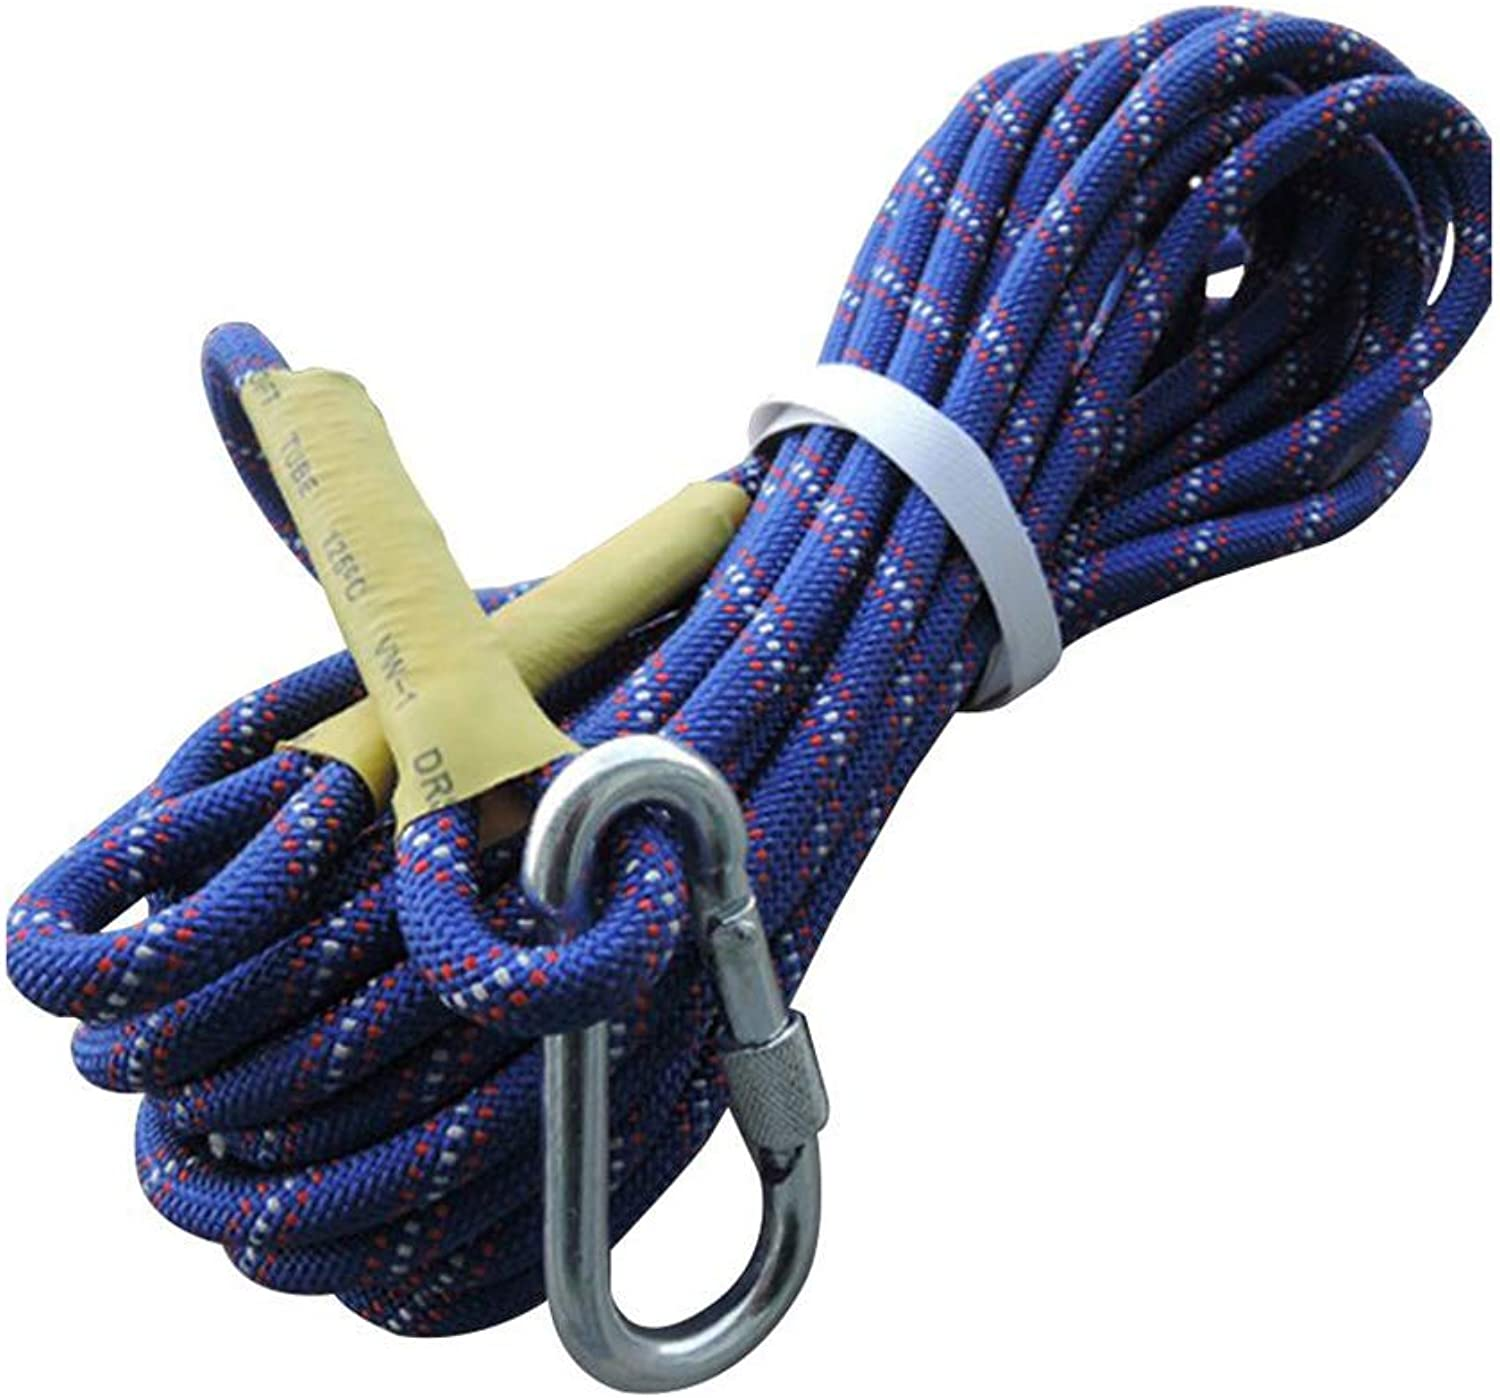 Climbing Rope ,WearResistant Outdoor Climbing Rope,Lifeline Equipment Rope Rope Safety Rope Insurance Rope Aerial Work Rope (color   blueee, Size   Diameter 10.5mm 10M)